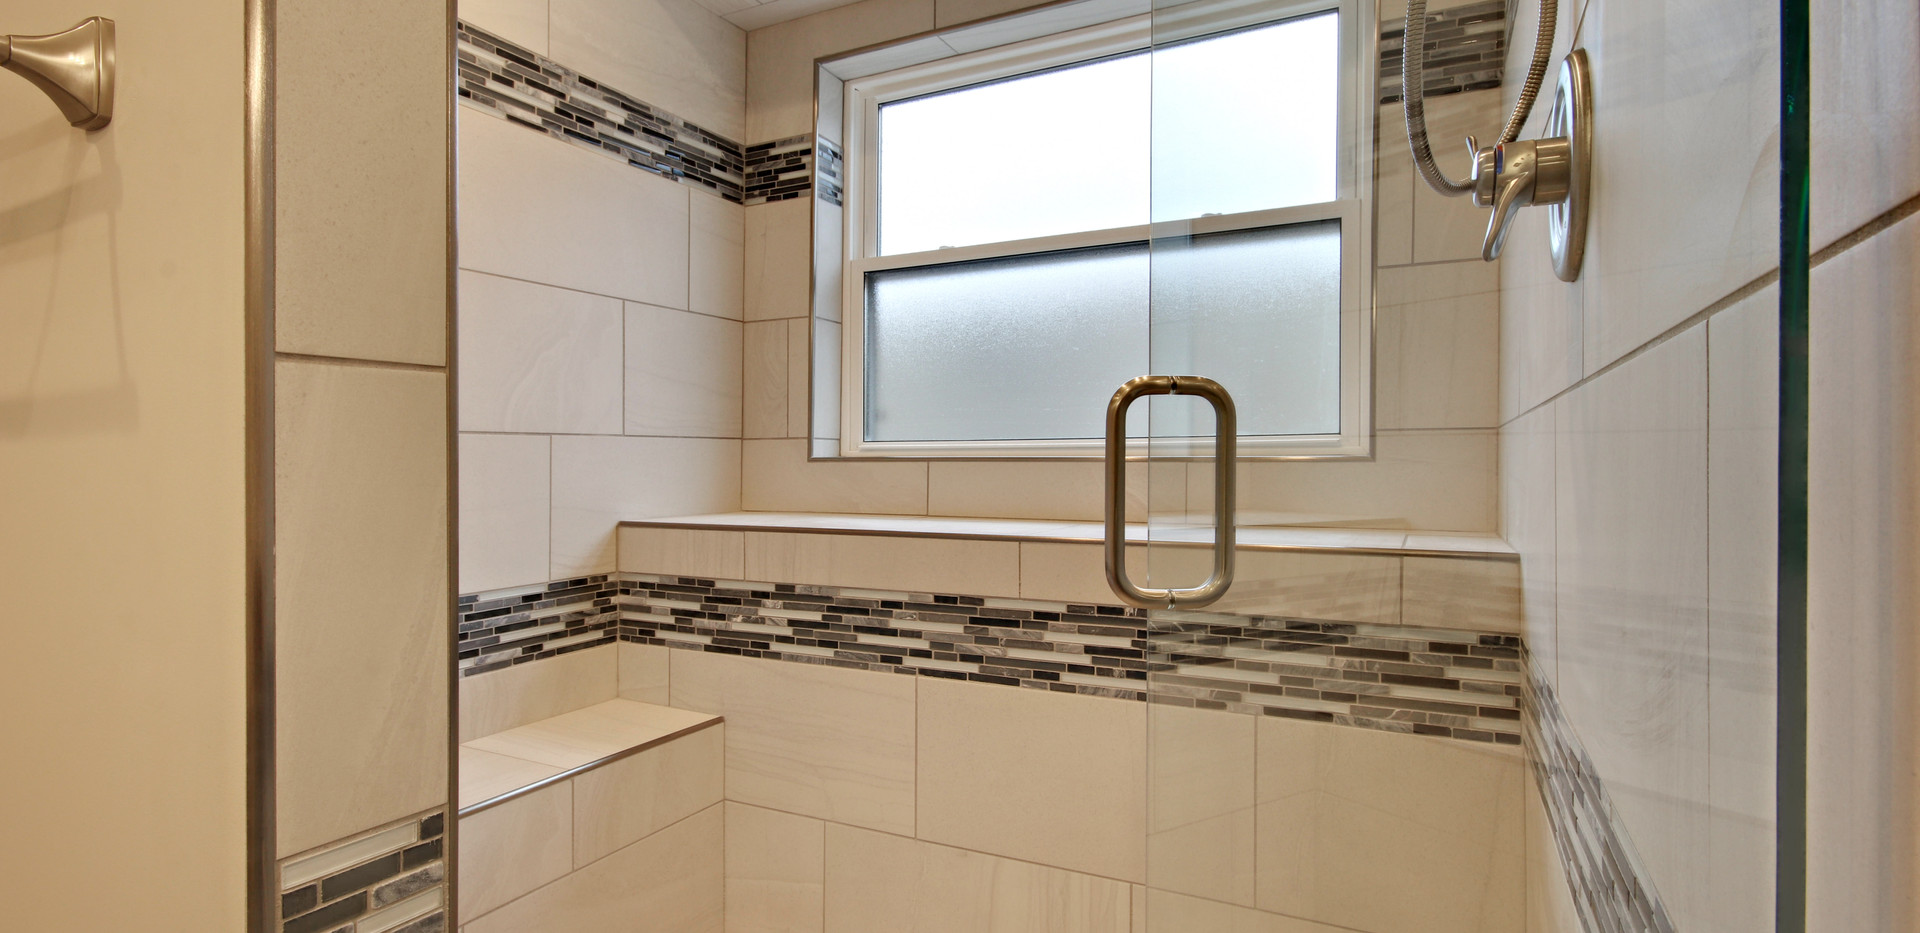 Jenison traditional shower remodel featuring a glass door, tile bench, and white tile